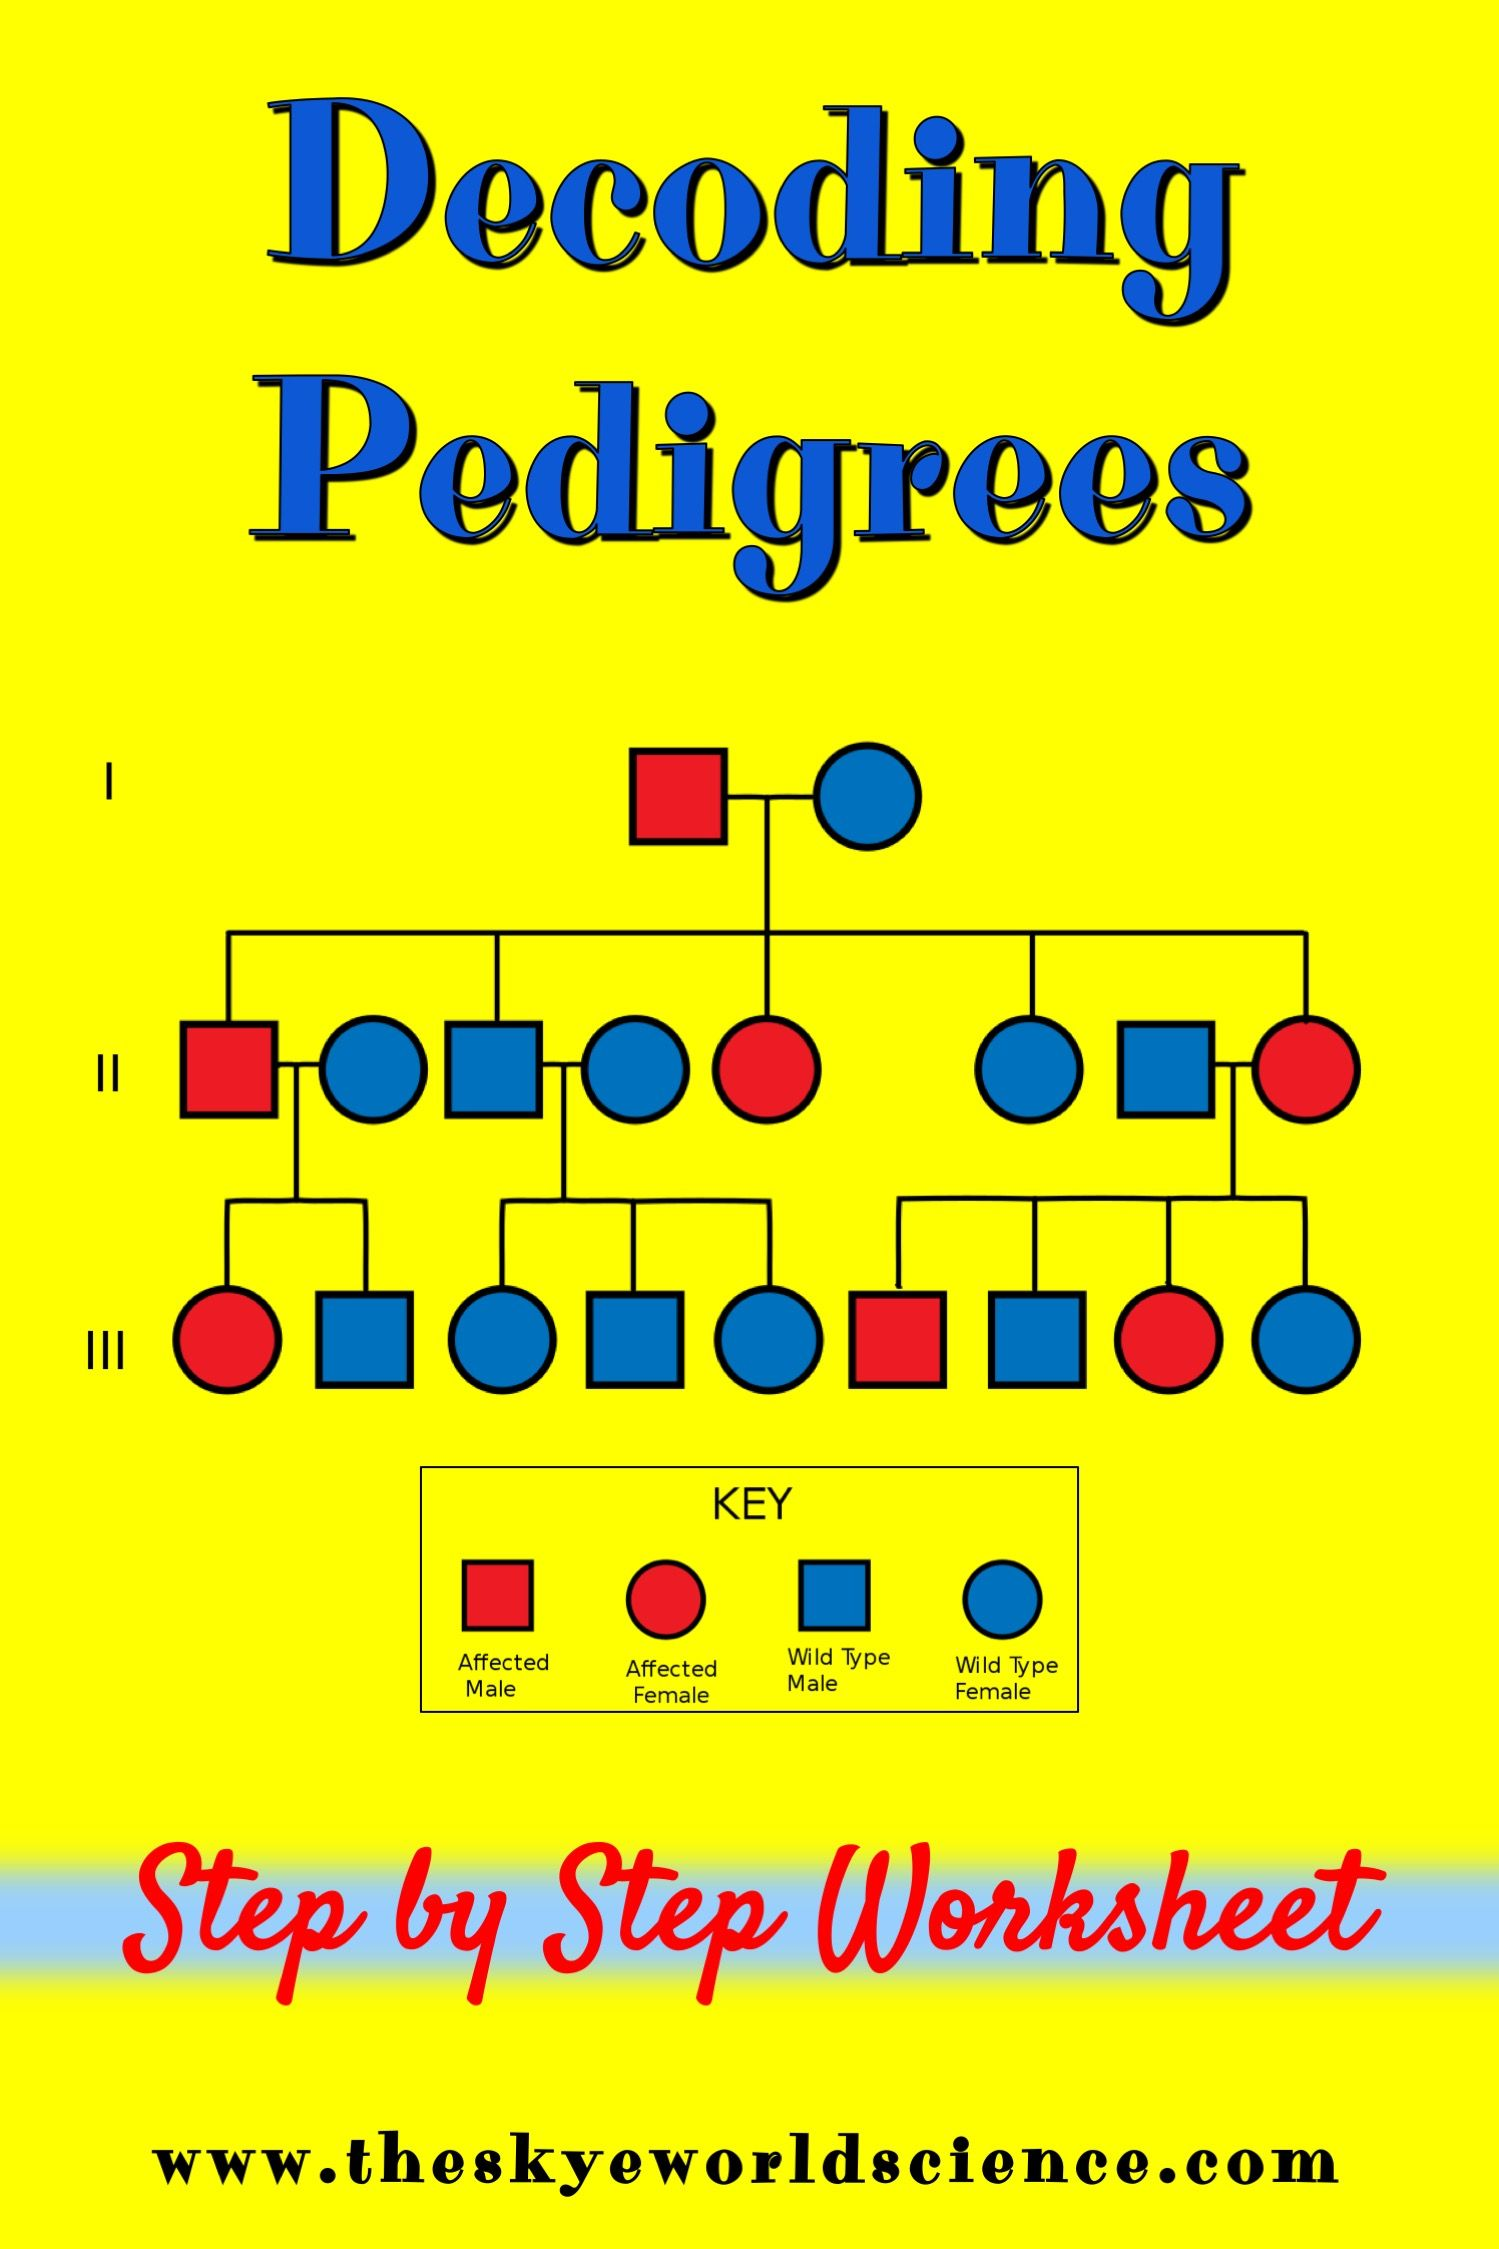 Decoding Pedigrees Worksheet